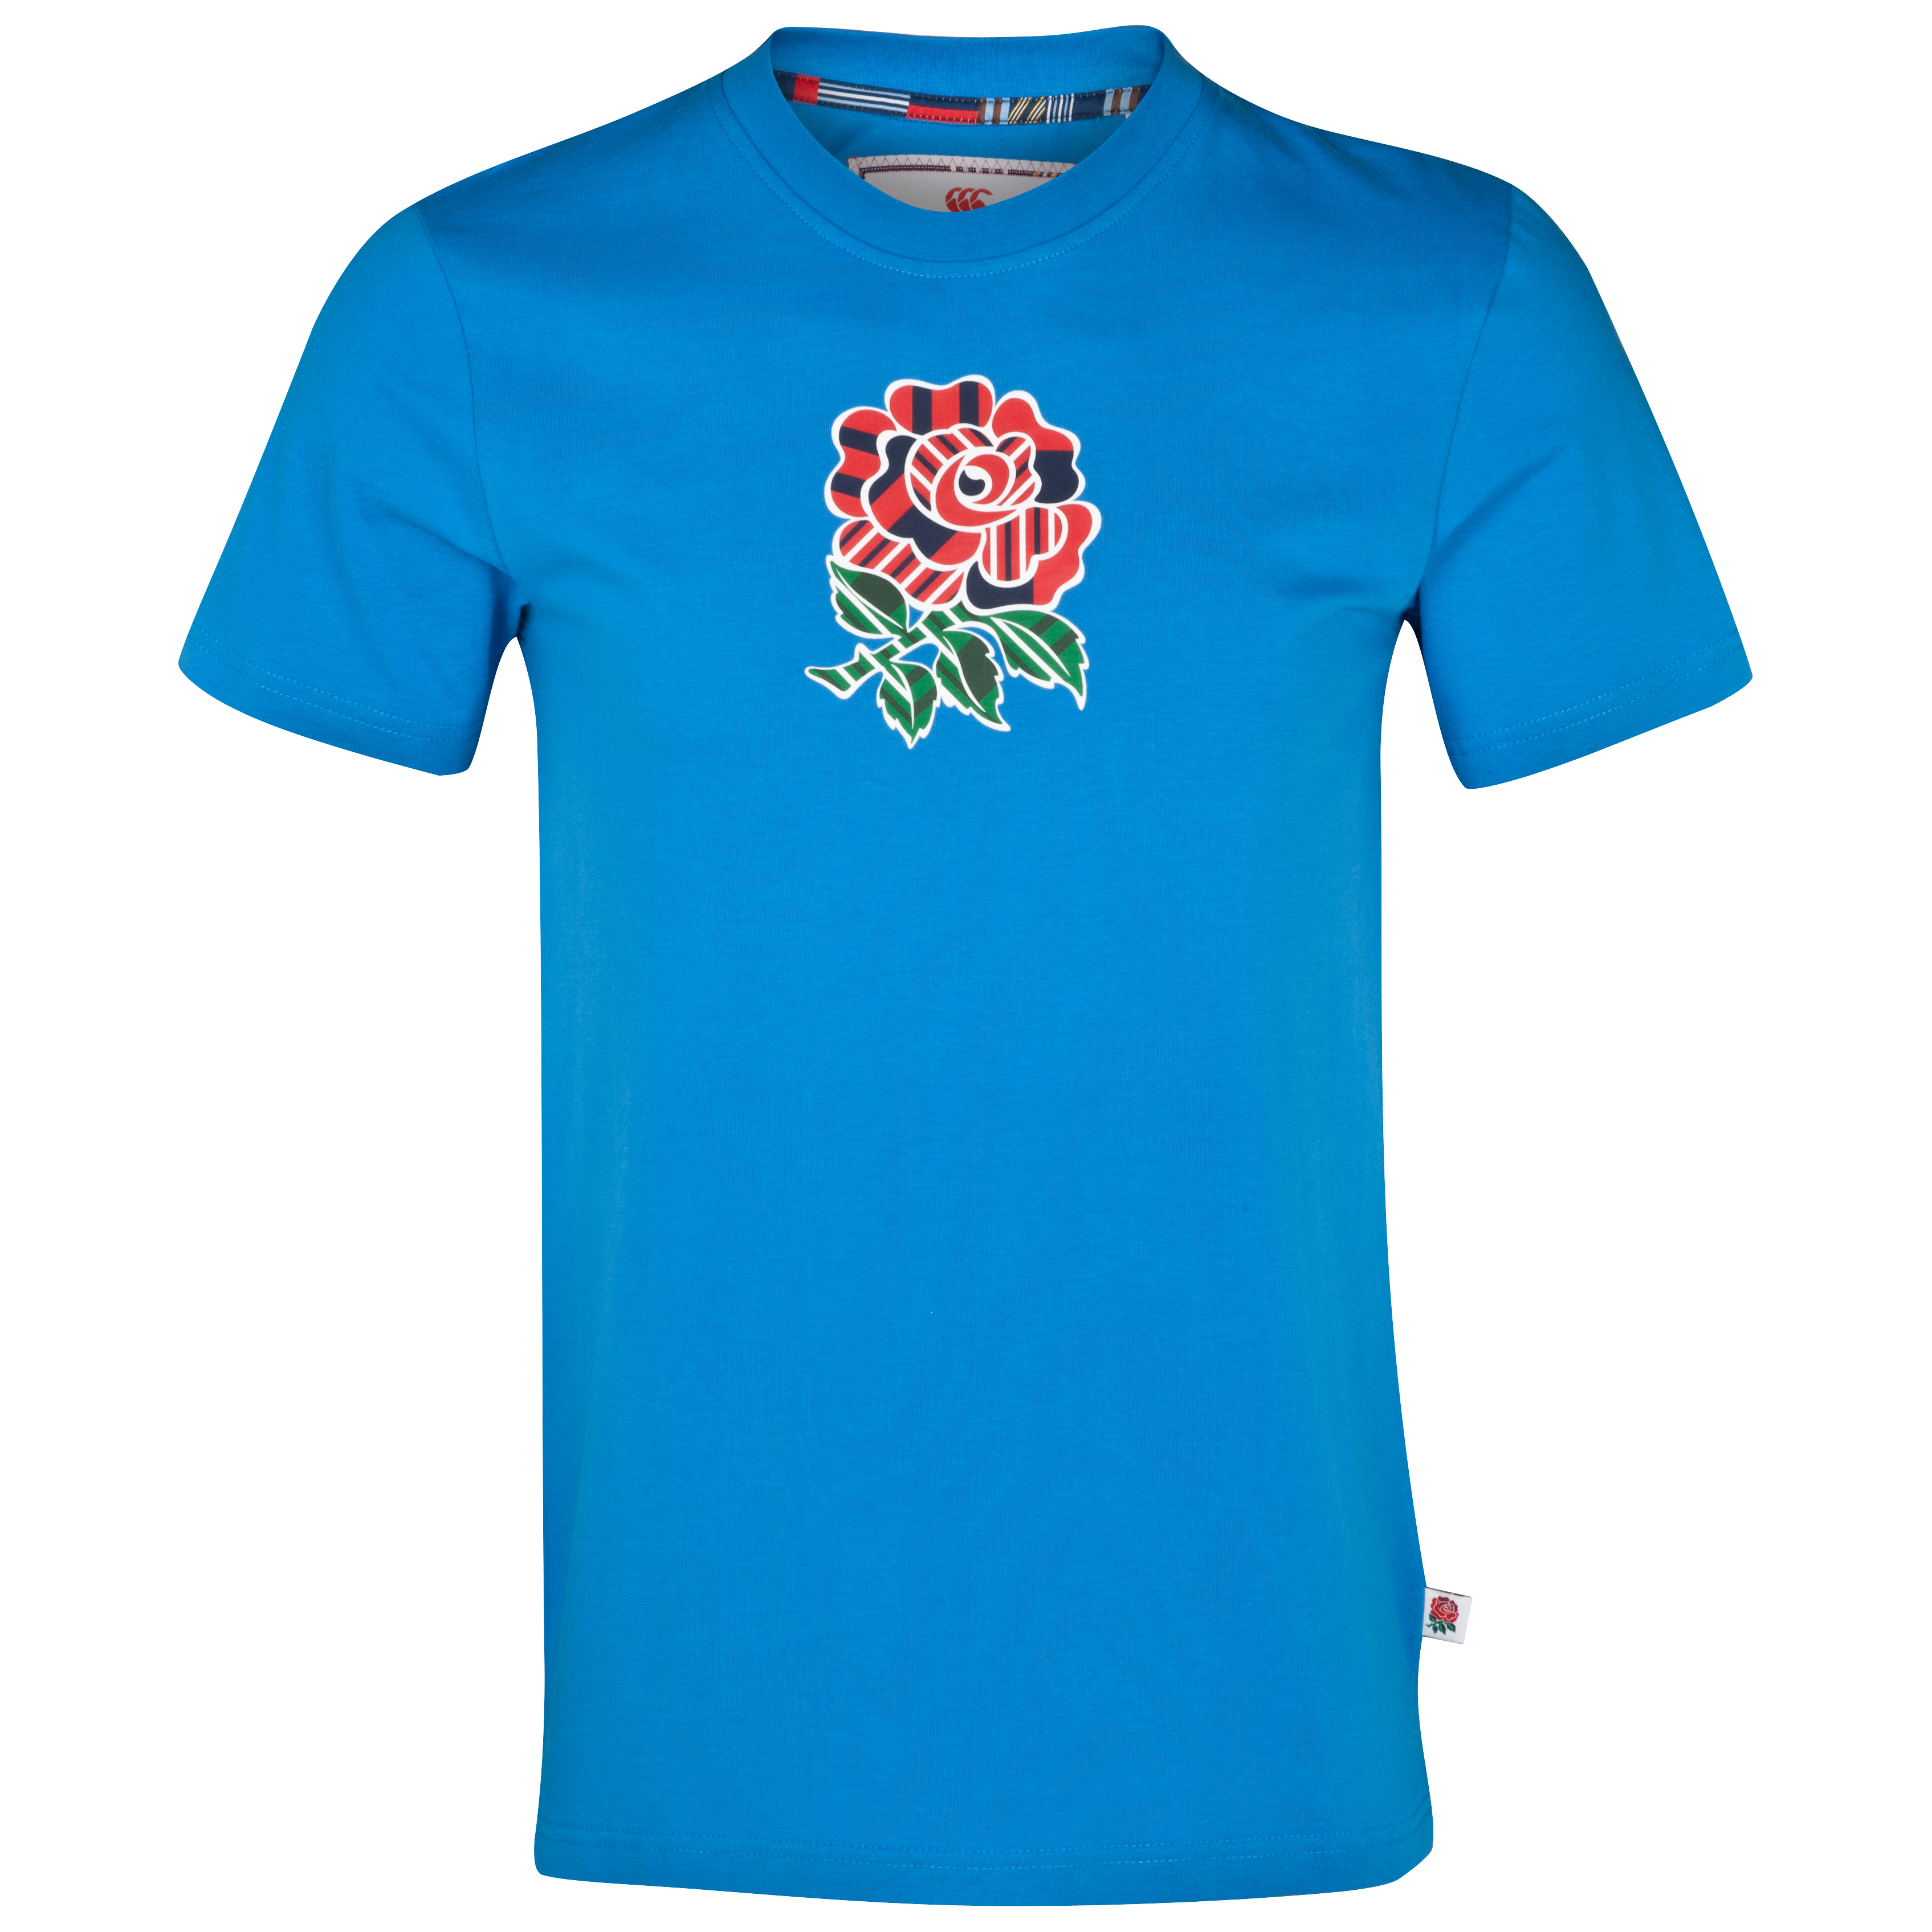 England Uglies Cotton Rose T-Shirt - British Blue